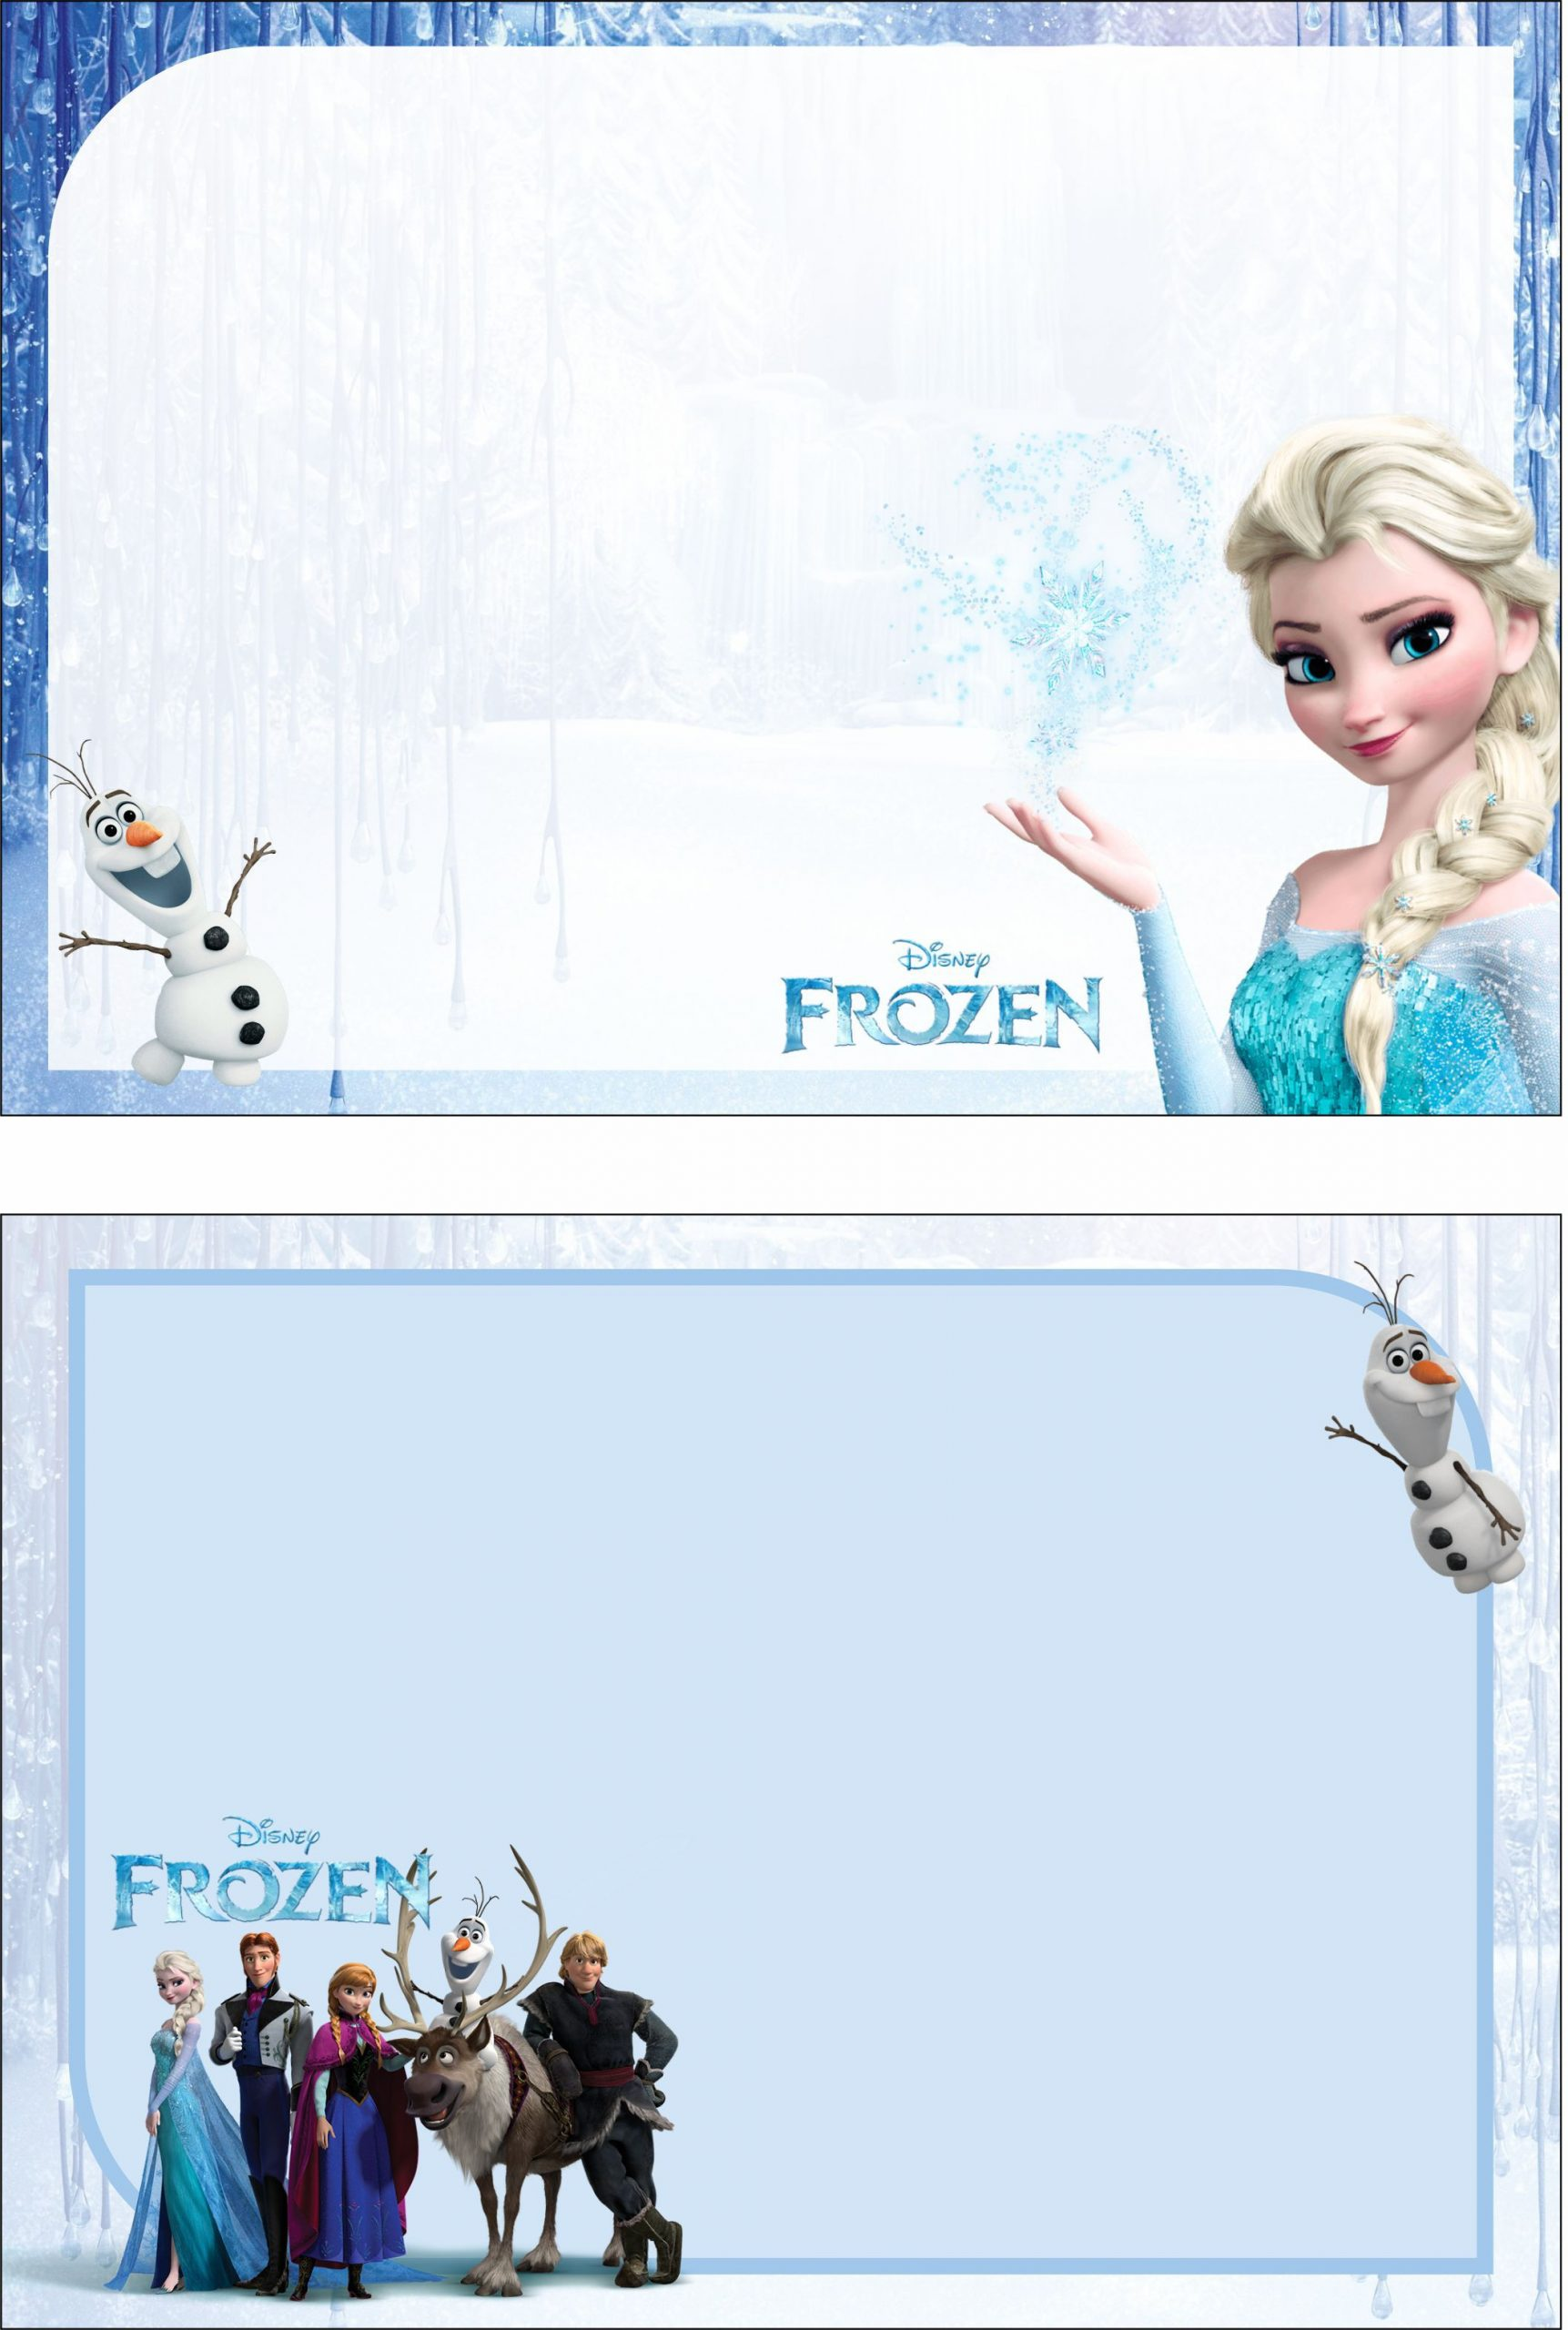 Frozen Invite Printable Free Frozen 2 Birthday Party Kit Templates In 2020